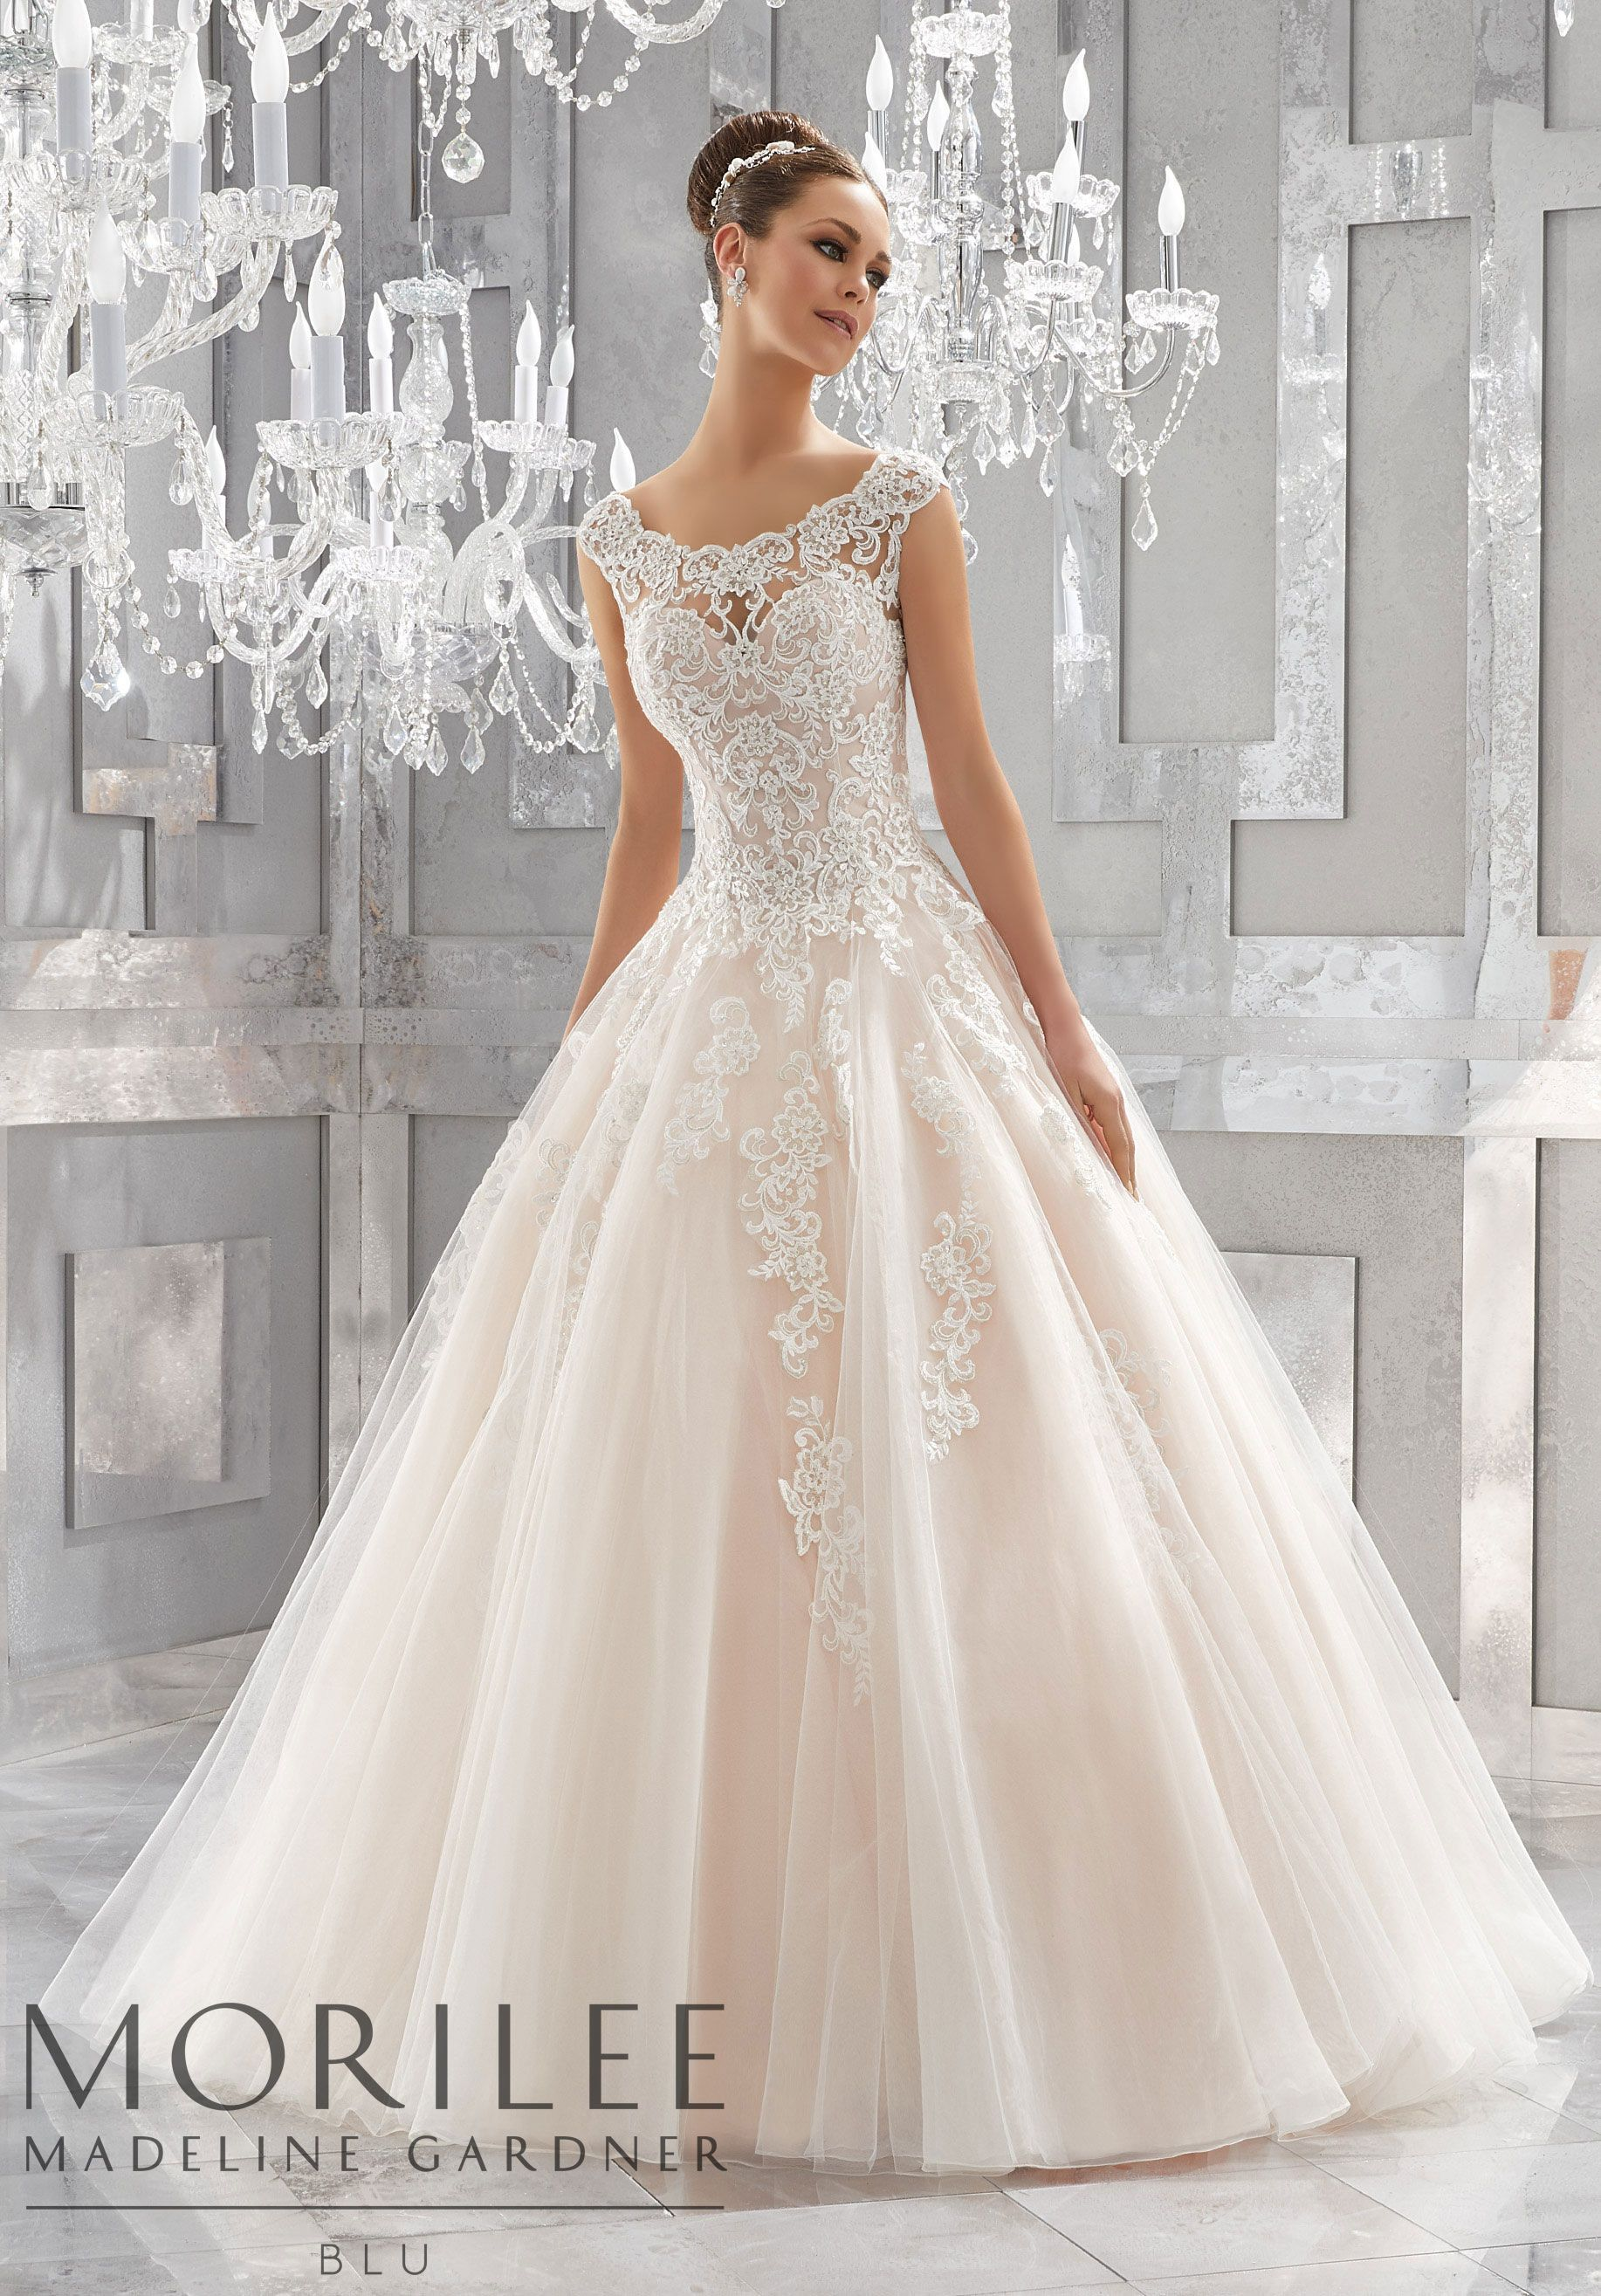 Fairytale ball gown wedding dresses  Morilee  Madeline Gardner Massima Wedding Dress A Fairytale